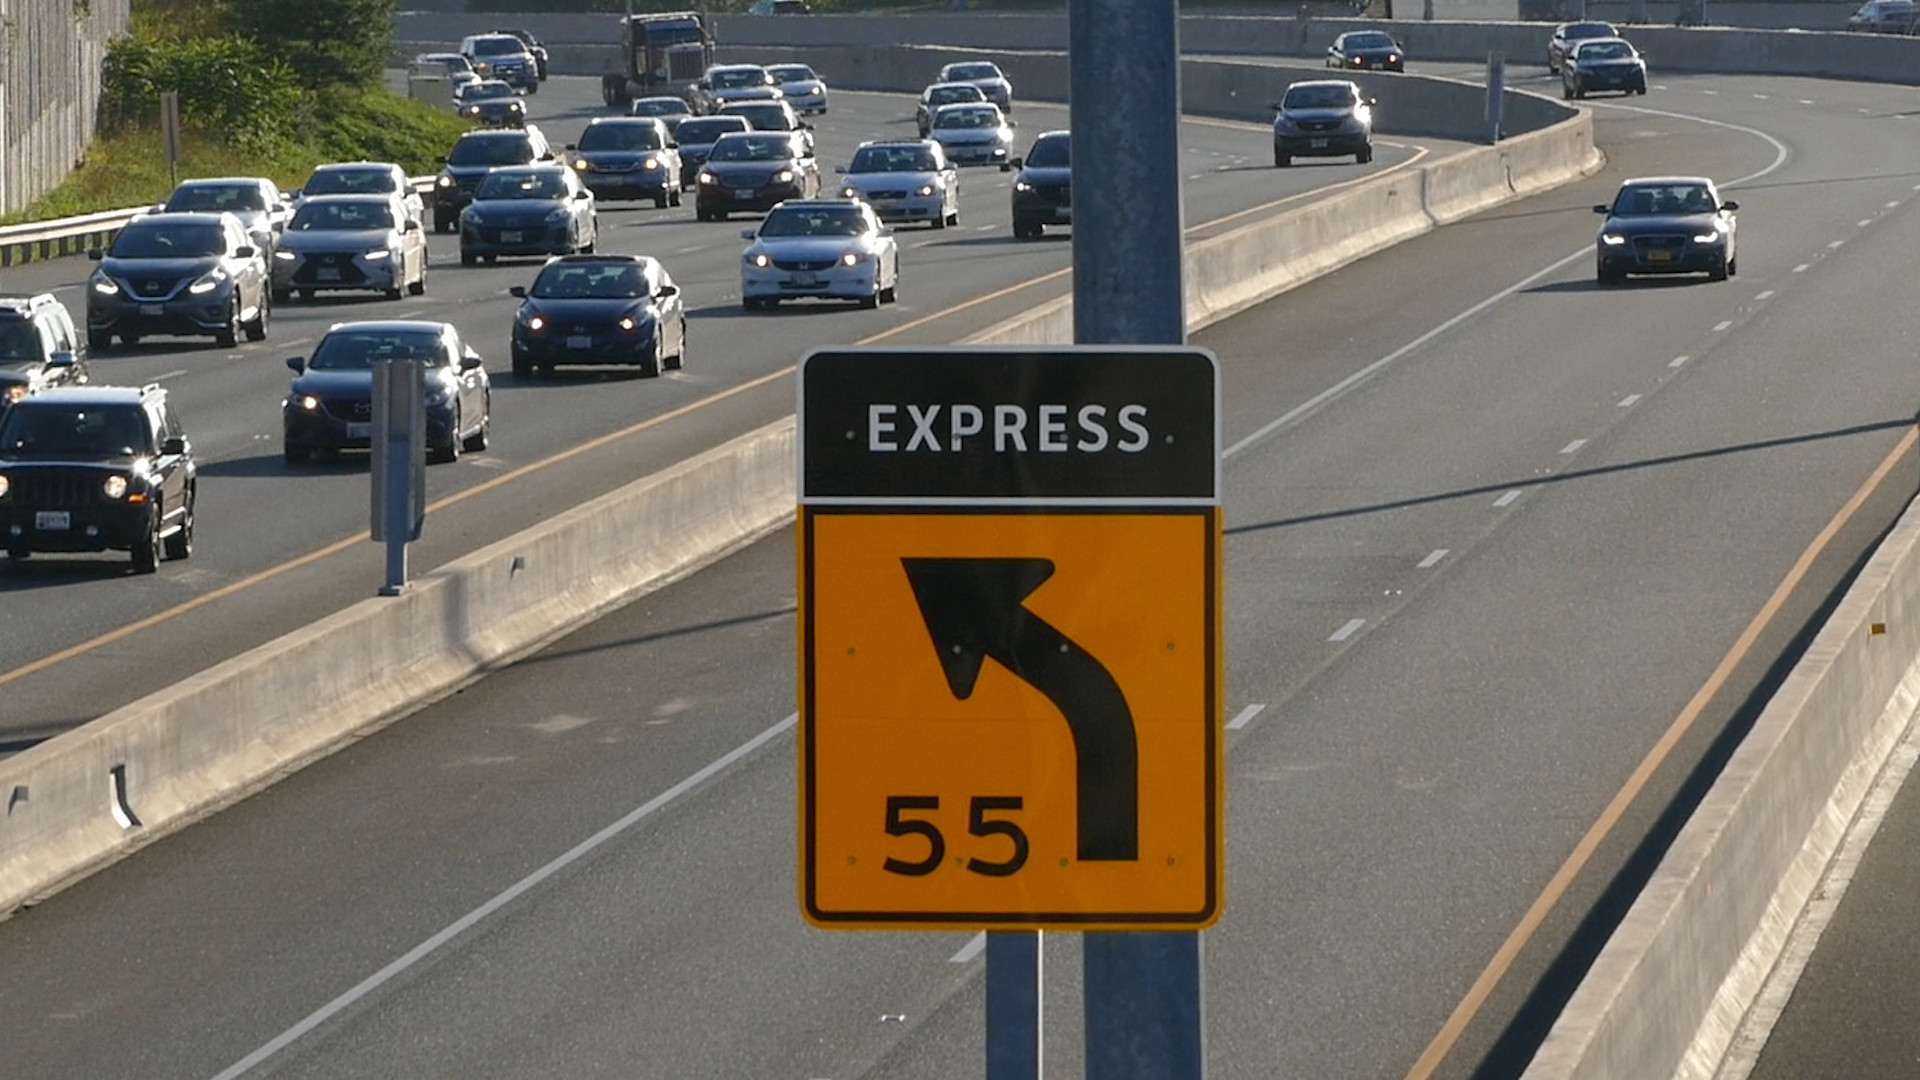 Designed wisely, express lanes can reduce travel time, bring revenue